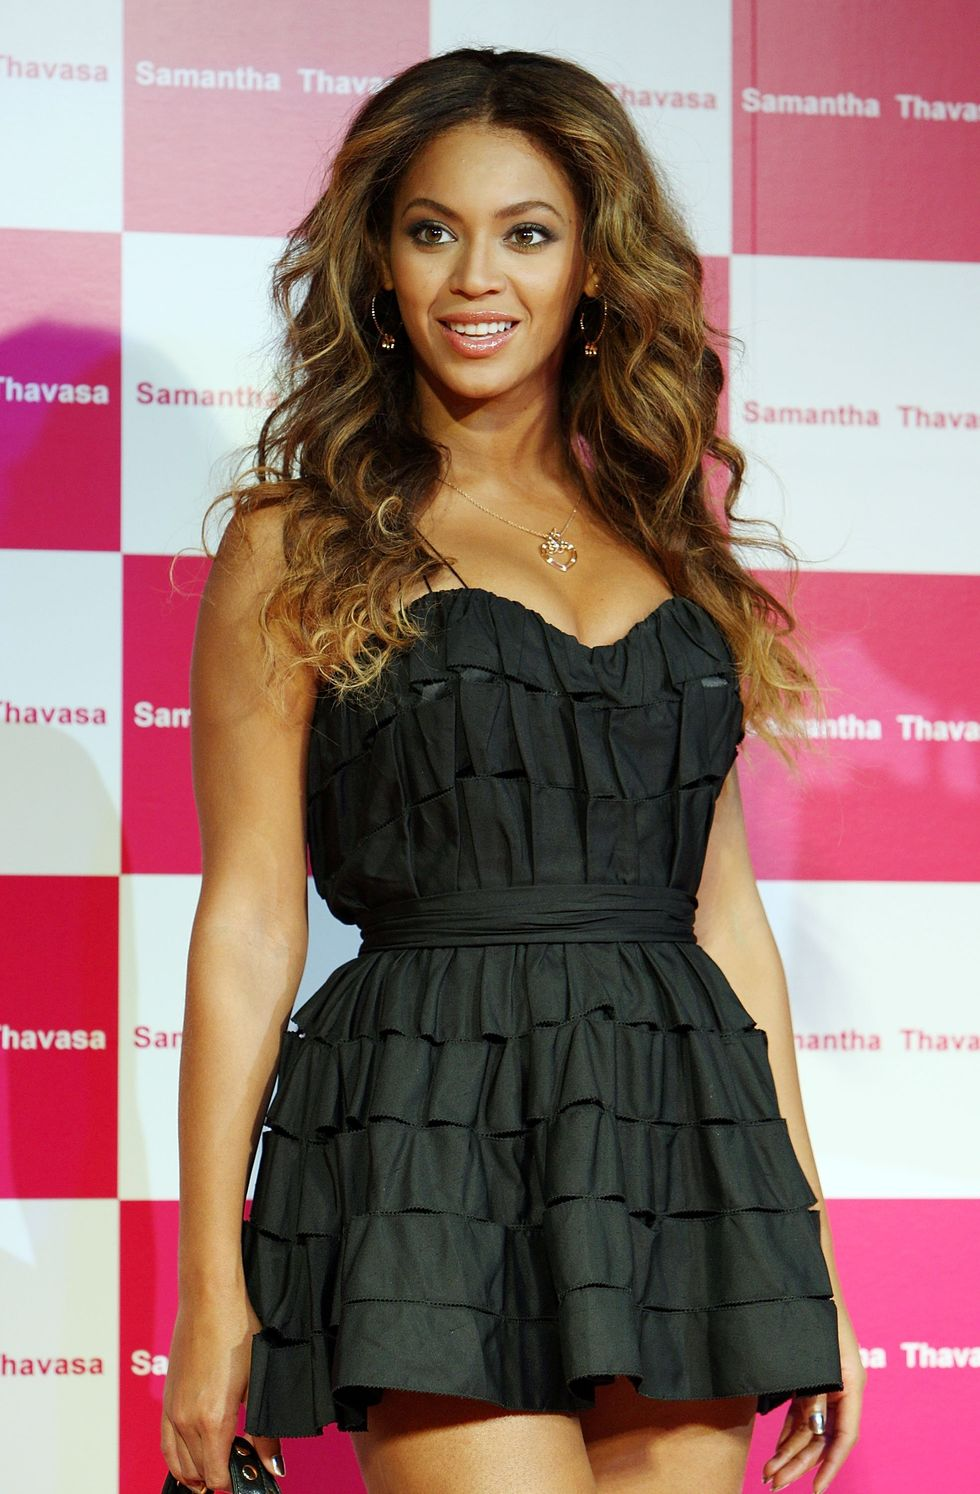 beyonce-special-meet-and-greet-with-beyonce-event-in-tokyo-01